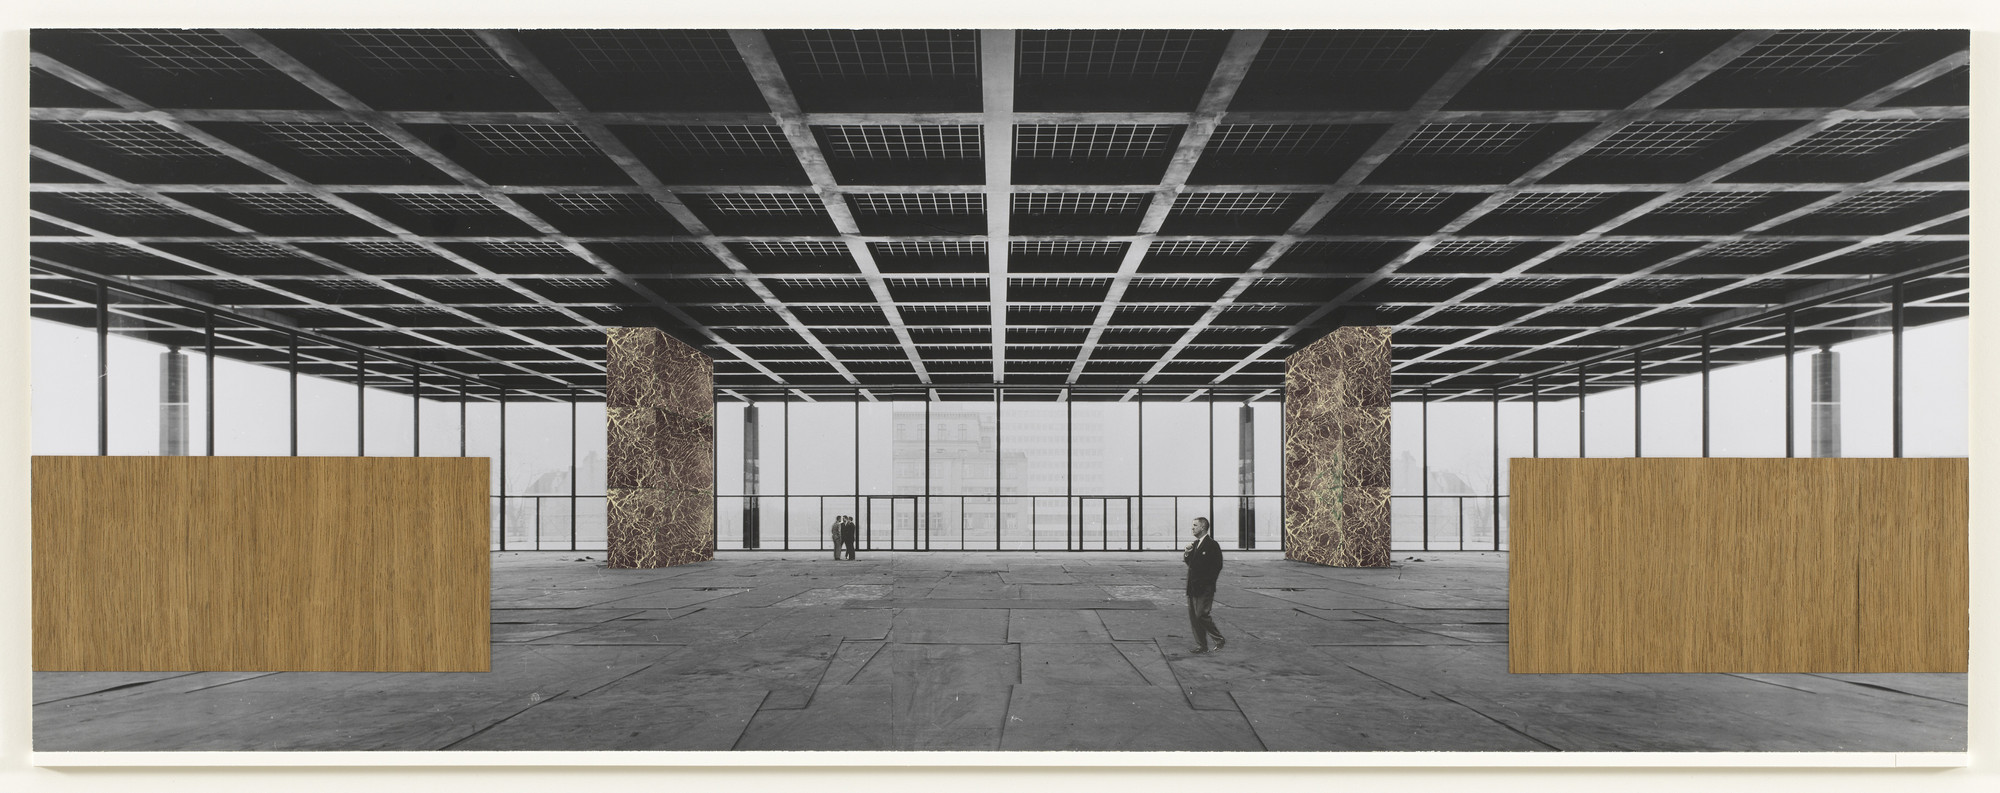 Ludwig Mies van der Rohe. New National Gallery, Berlin, Germany (Interior perspective). c.1962–1968